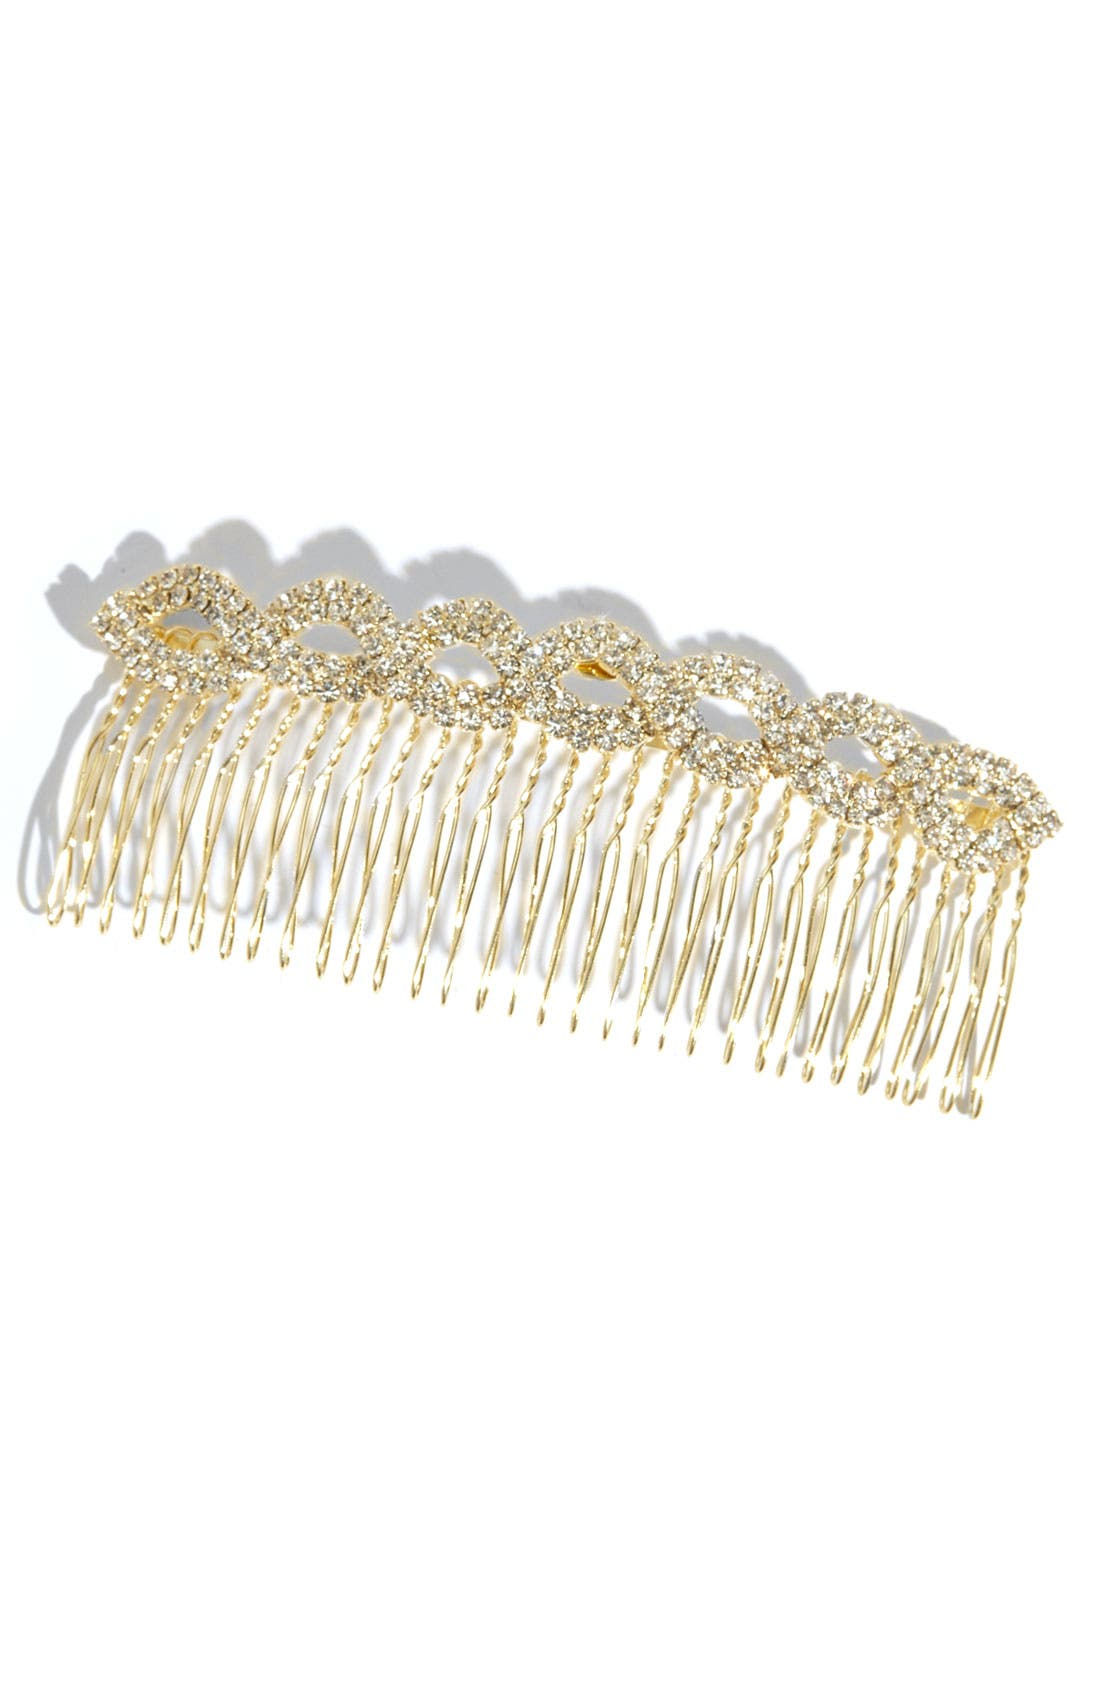 Alternate Image 1 Selected - Cara 'Infinity - Large' Hair Comb